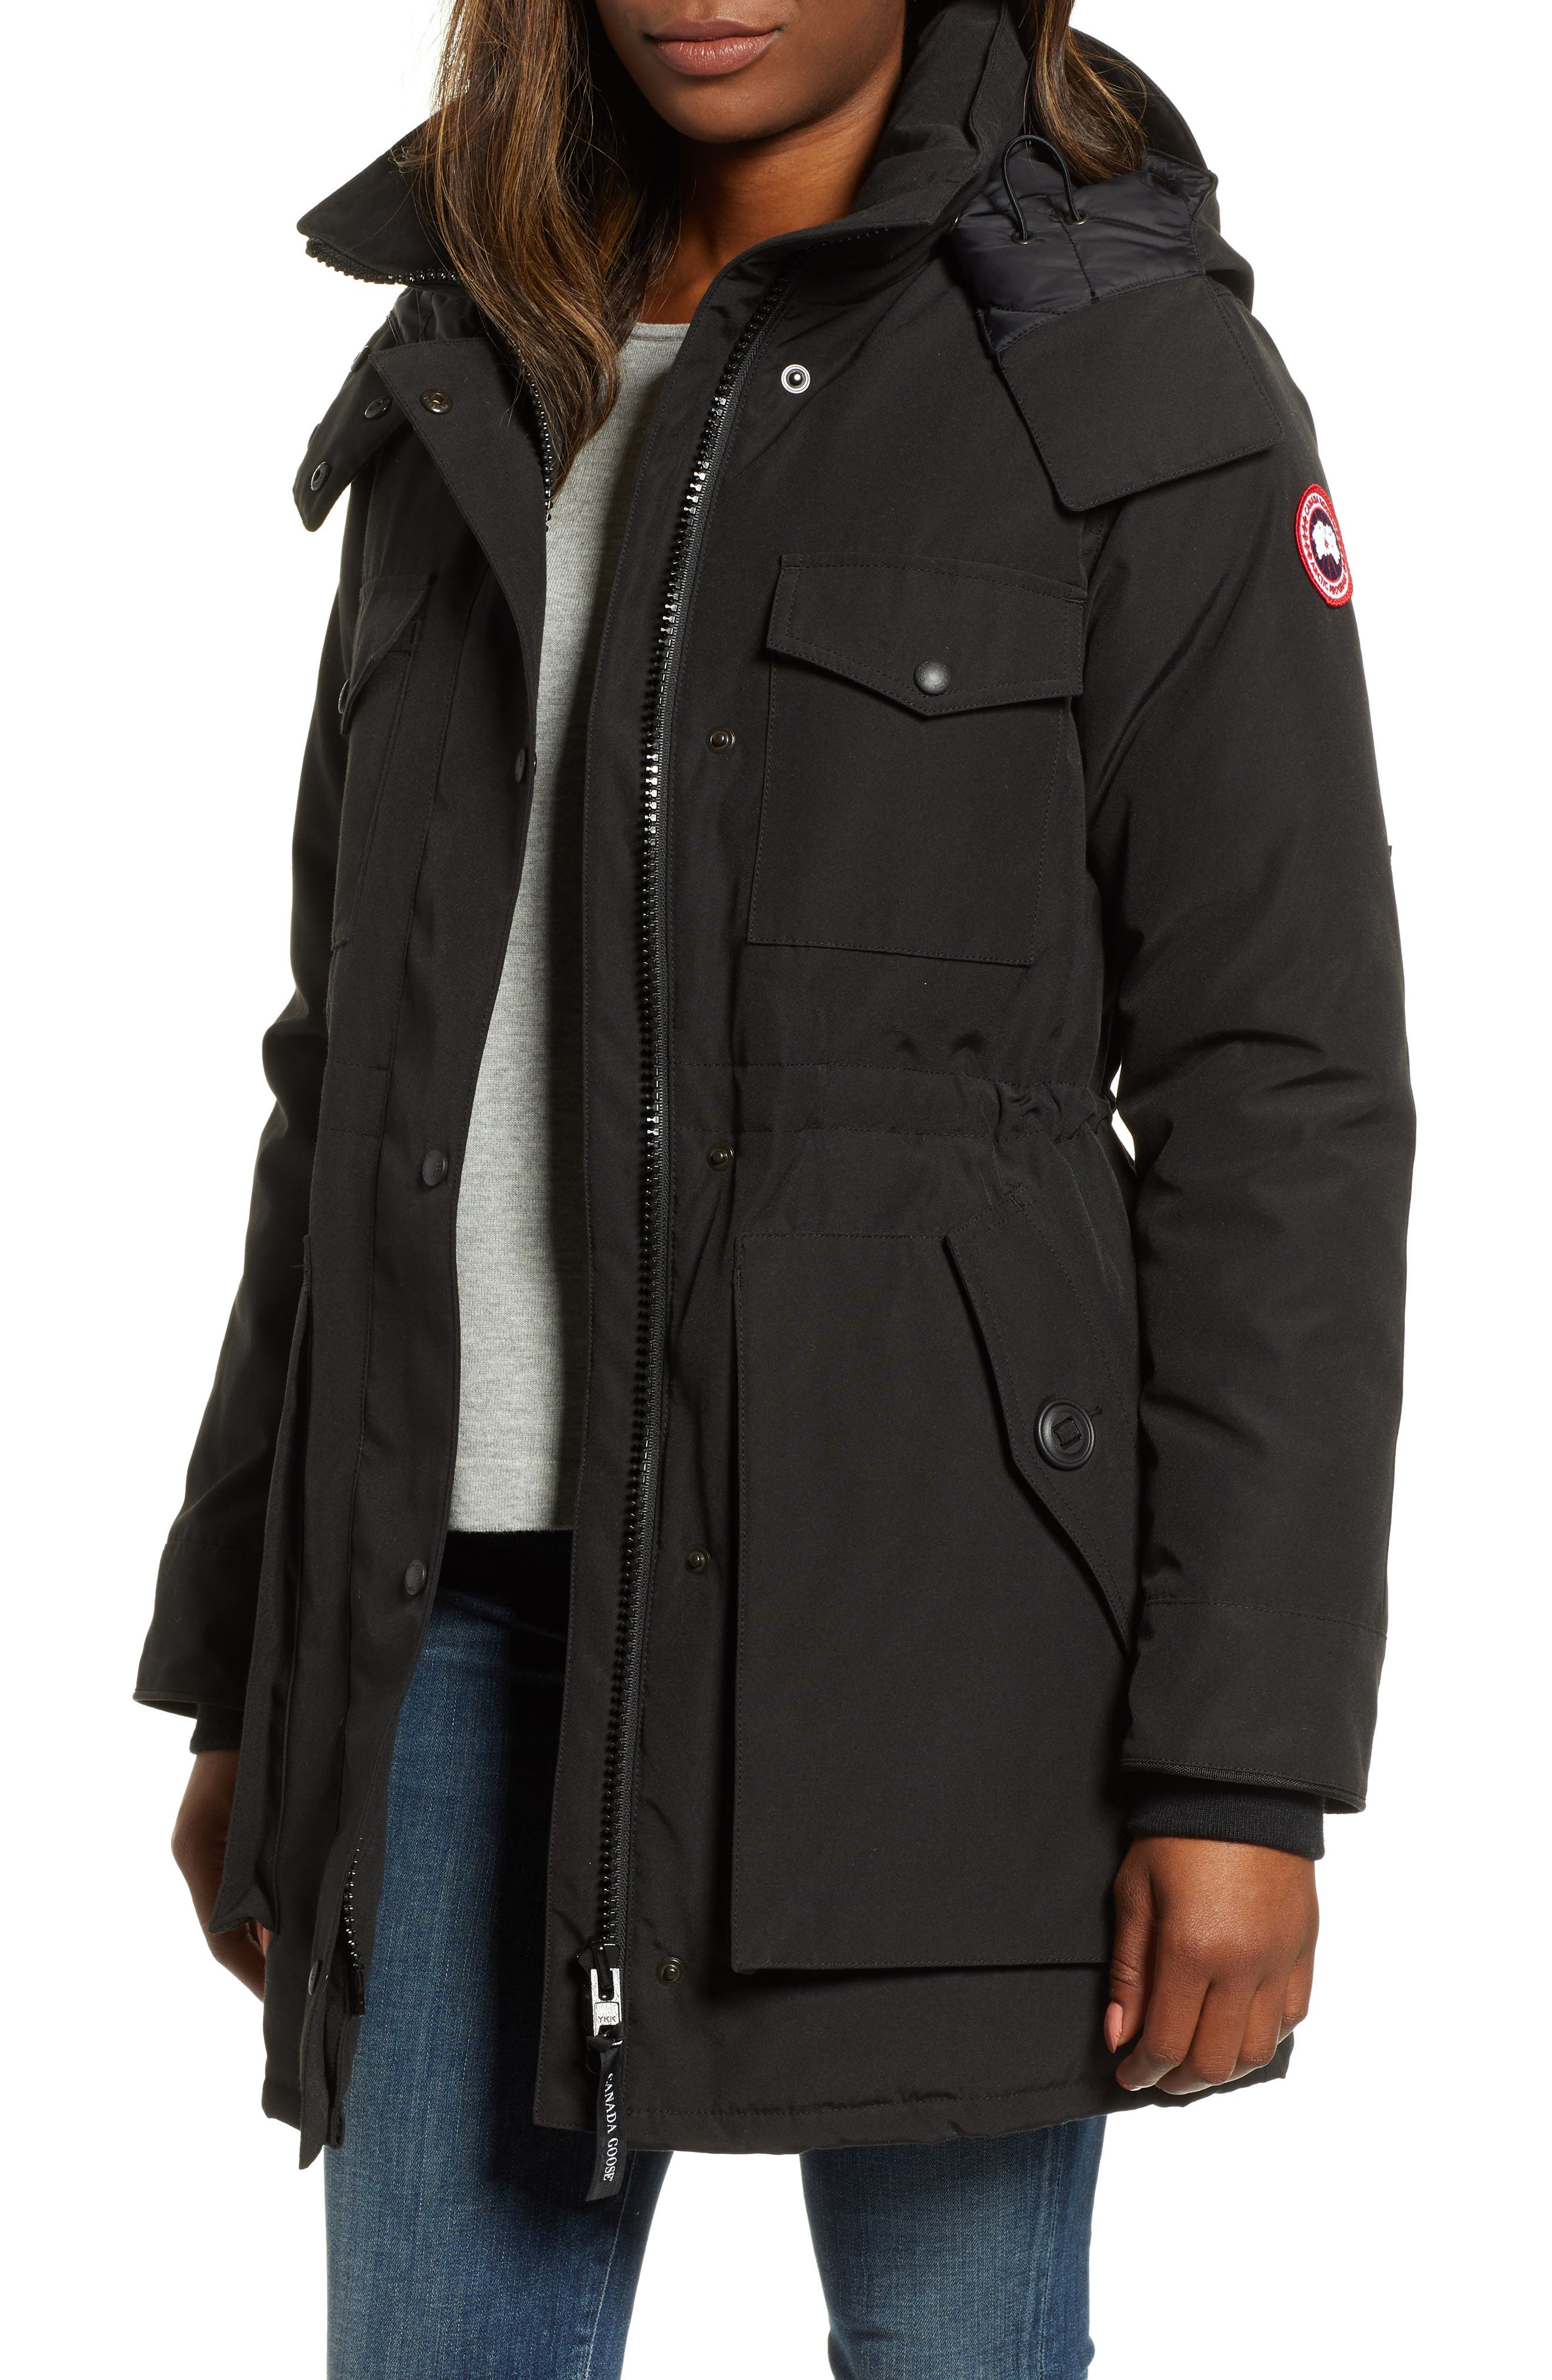 Canada Goose Gabriola Water Resistant Arctic Tech 625 Fill Power Down Parka, (10-12) - Black